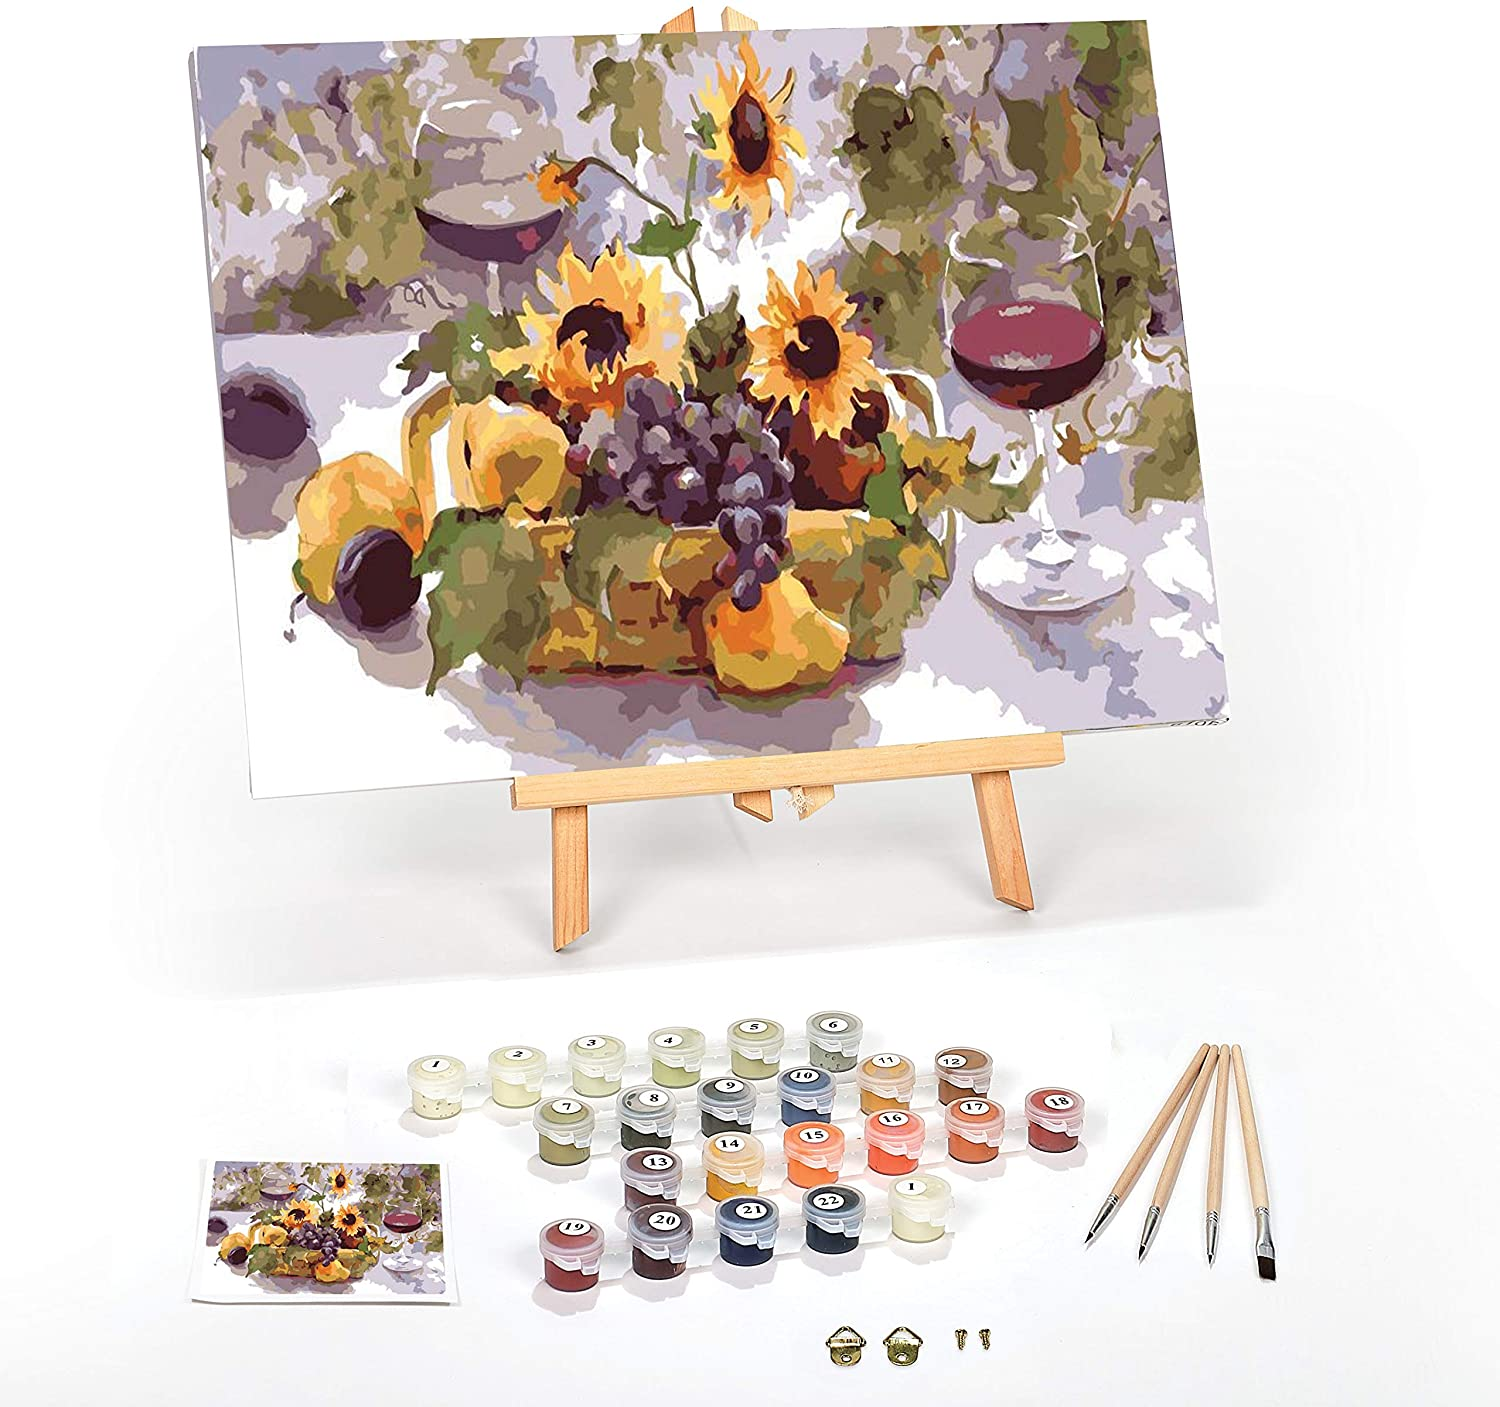 Paint by Numbers for Adults: Beginner to Advanced Number Painting Kit - Fun DIY Adult Arts and Crafts Projects - Kits Include 16 x 20 Inch No Wrinkle Canvas (Summer Wine, 12 x 16 Framed)